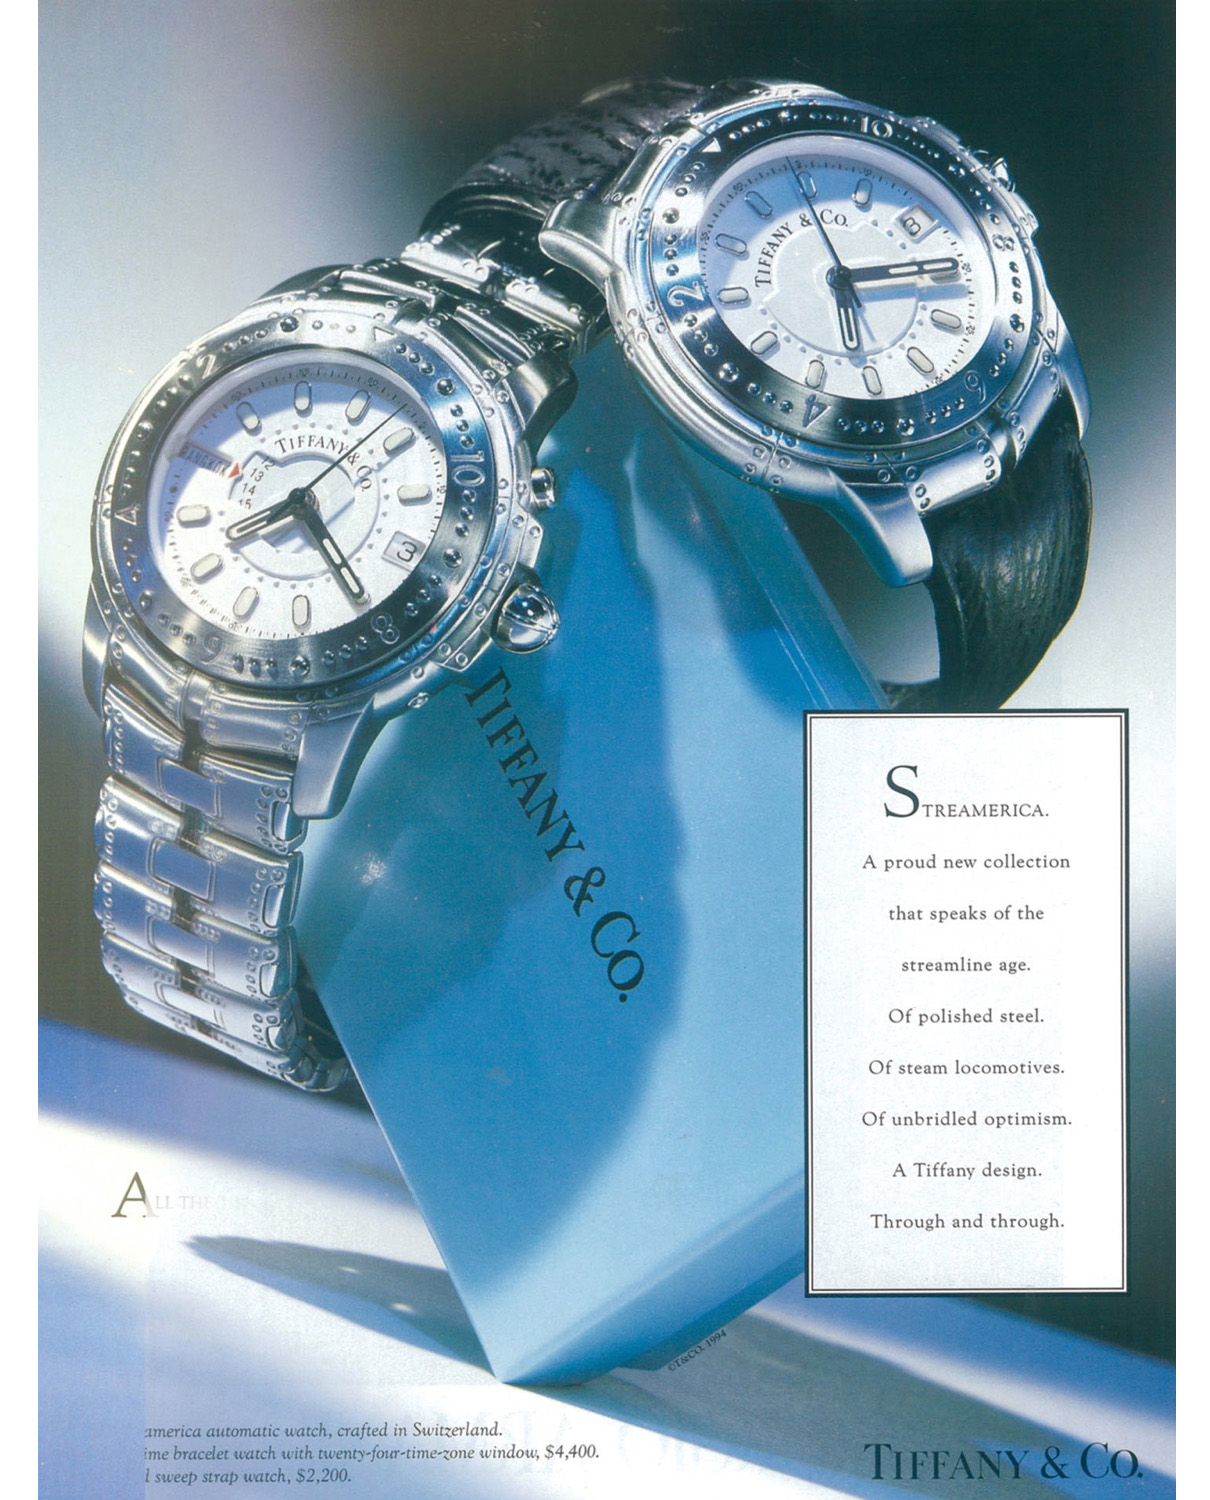 Tiffany & Co. Streamerica Stainless Steel Watch Collection Advertisements Ads